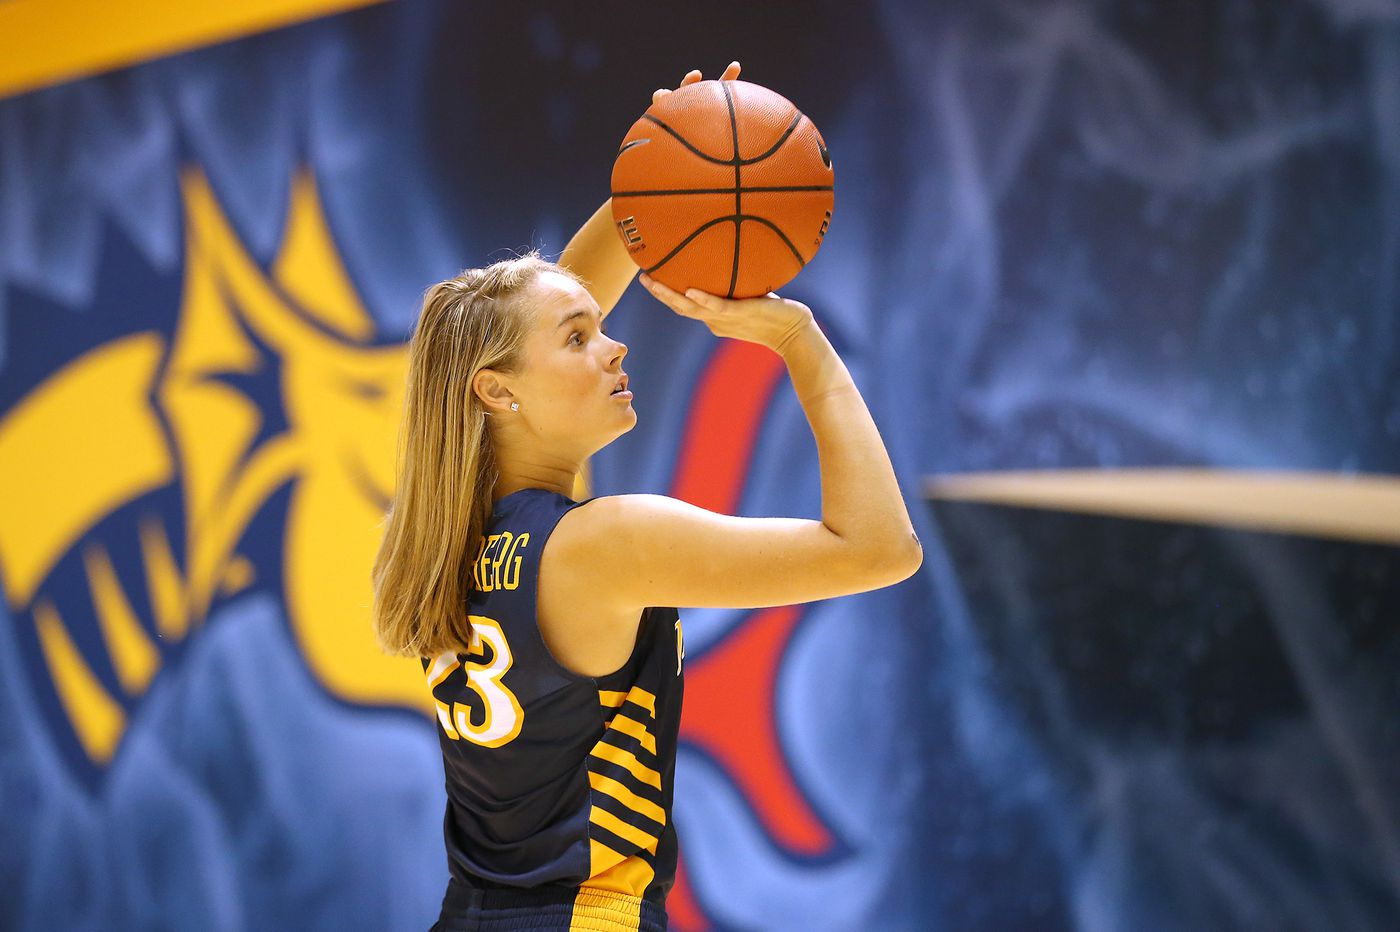 Drexel's Bailey Greenberg named CAA player of the year